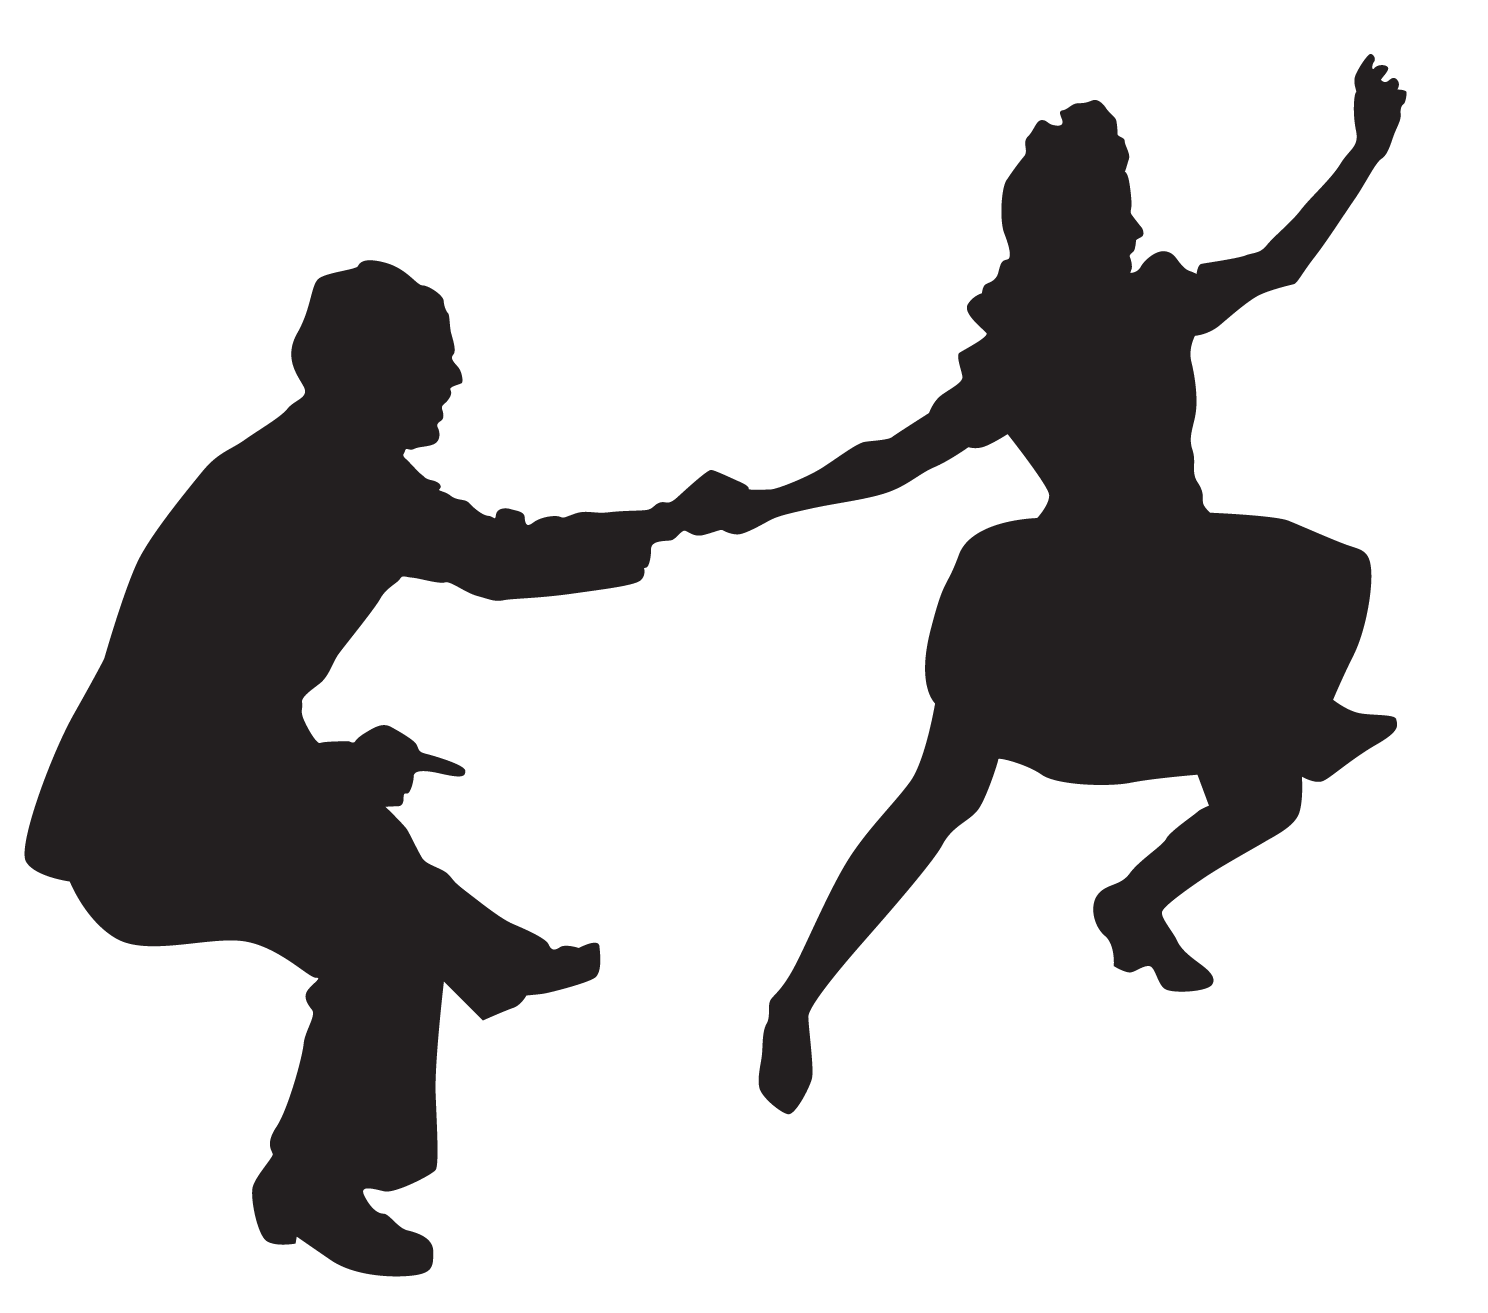 1488x1313 Home Gem City Swing Throughout Dancer Silhouette